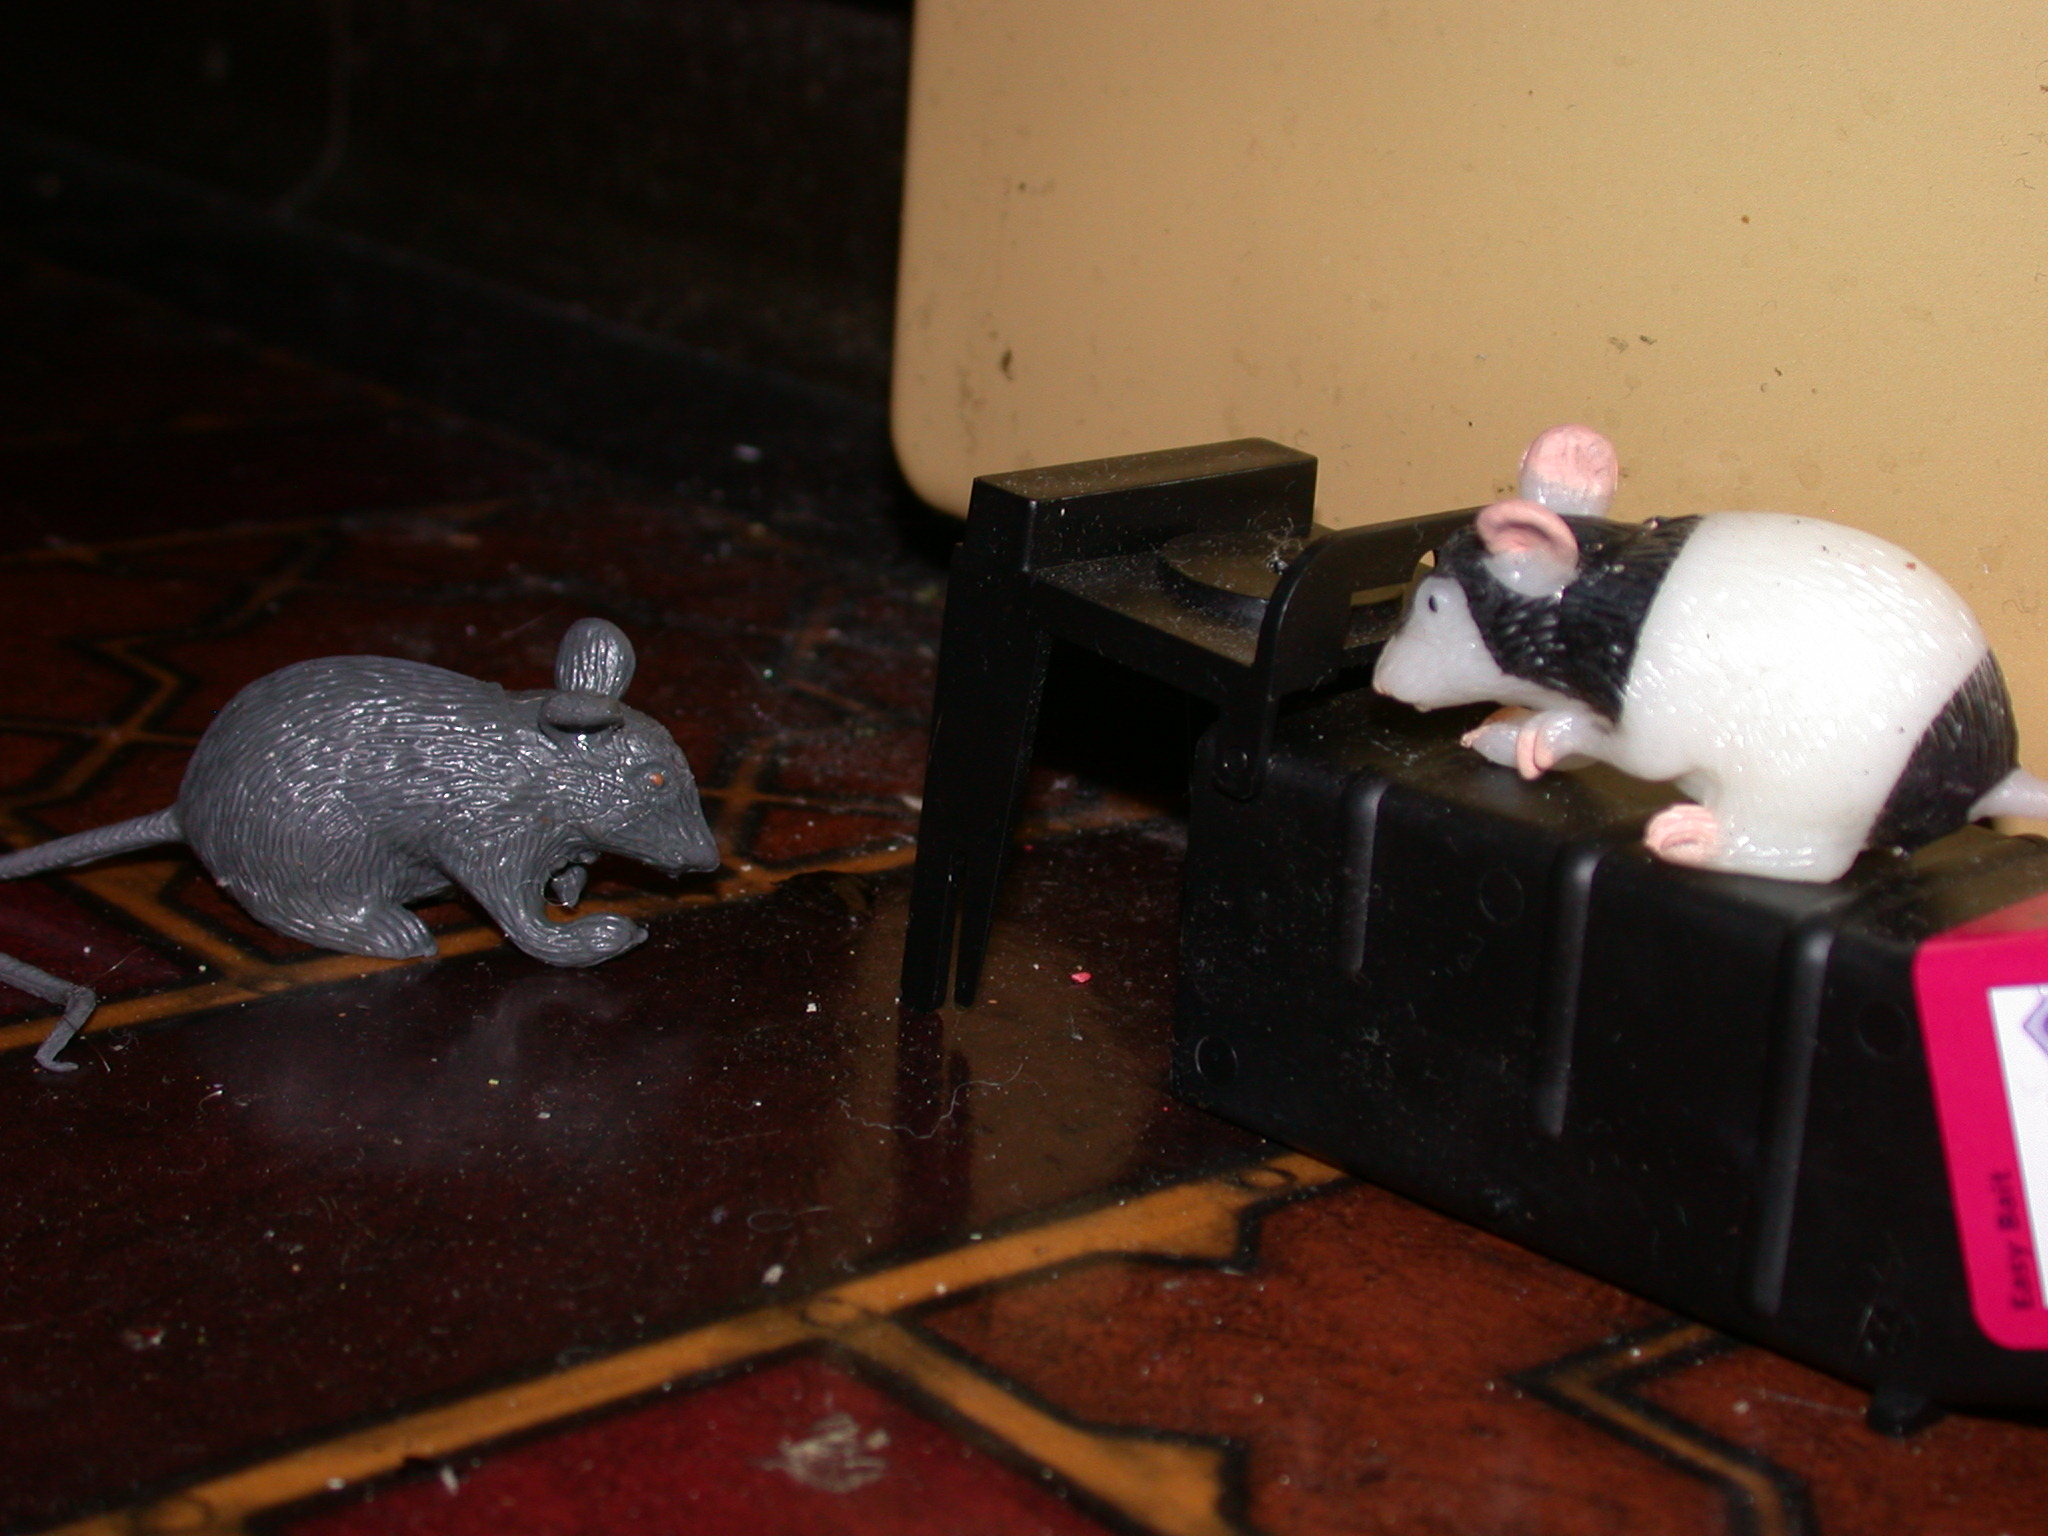 Mice Are Clever and Plastic